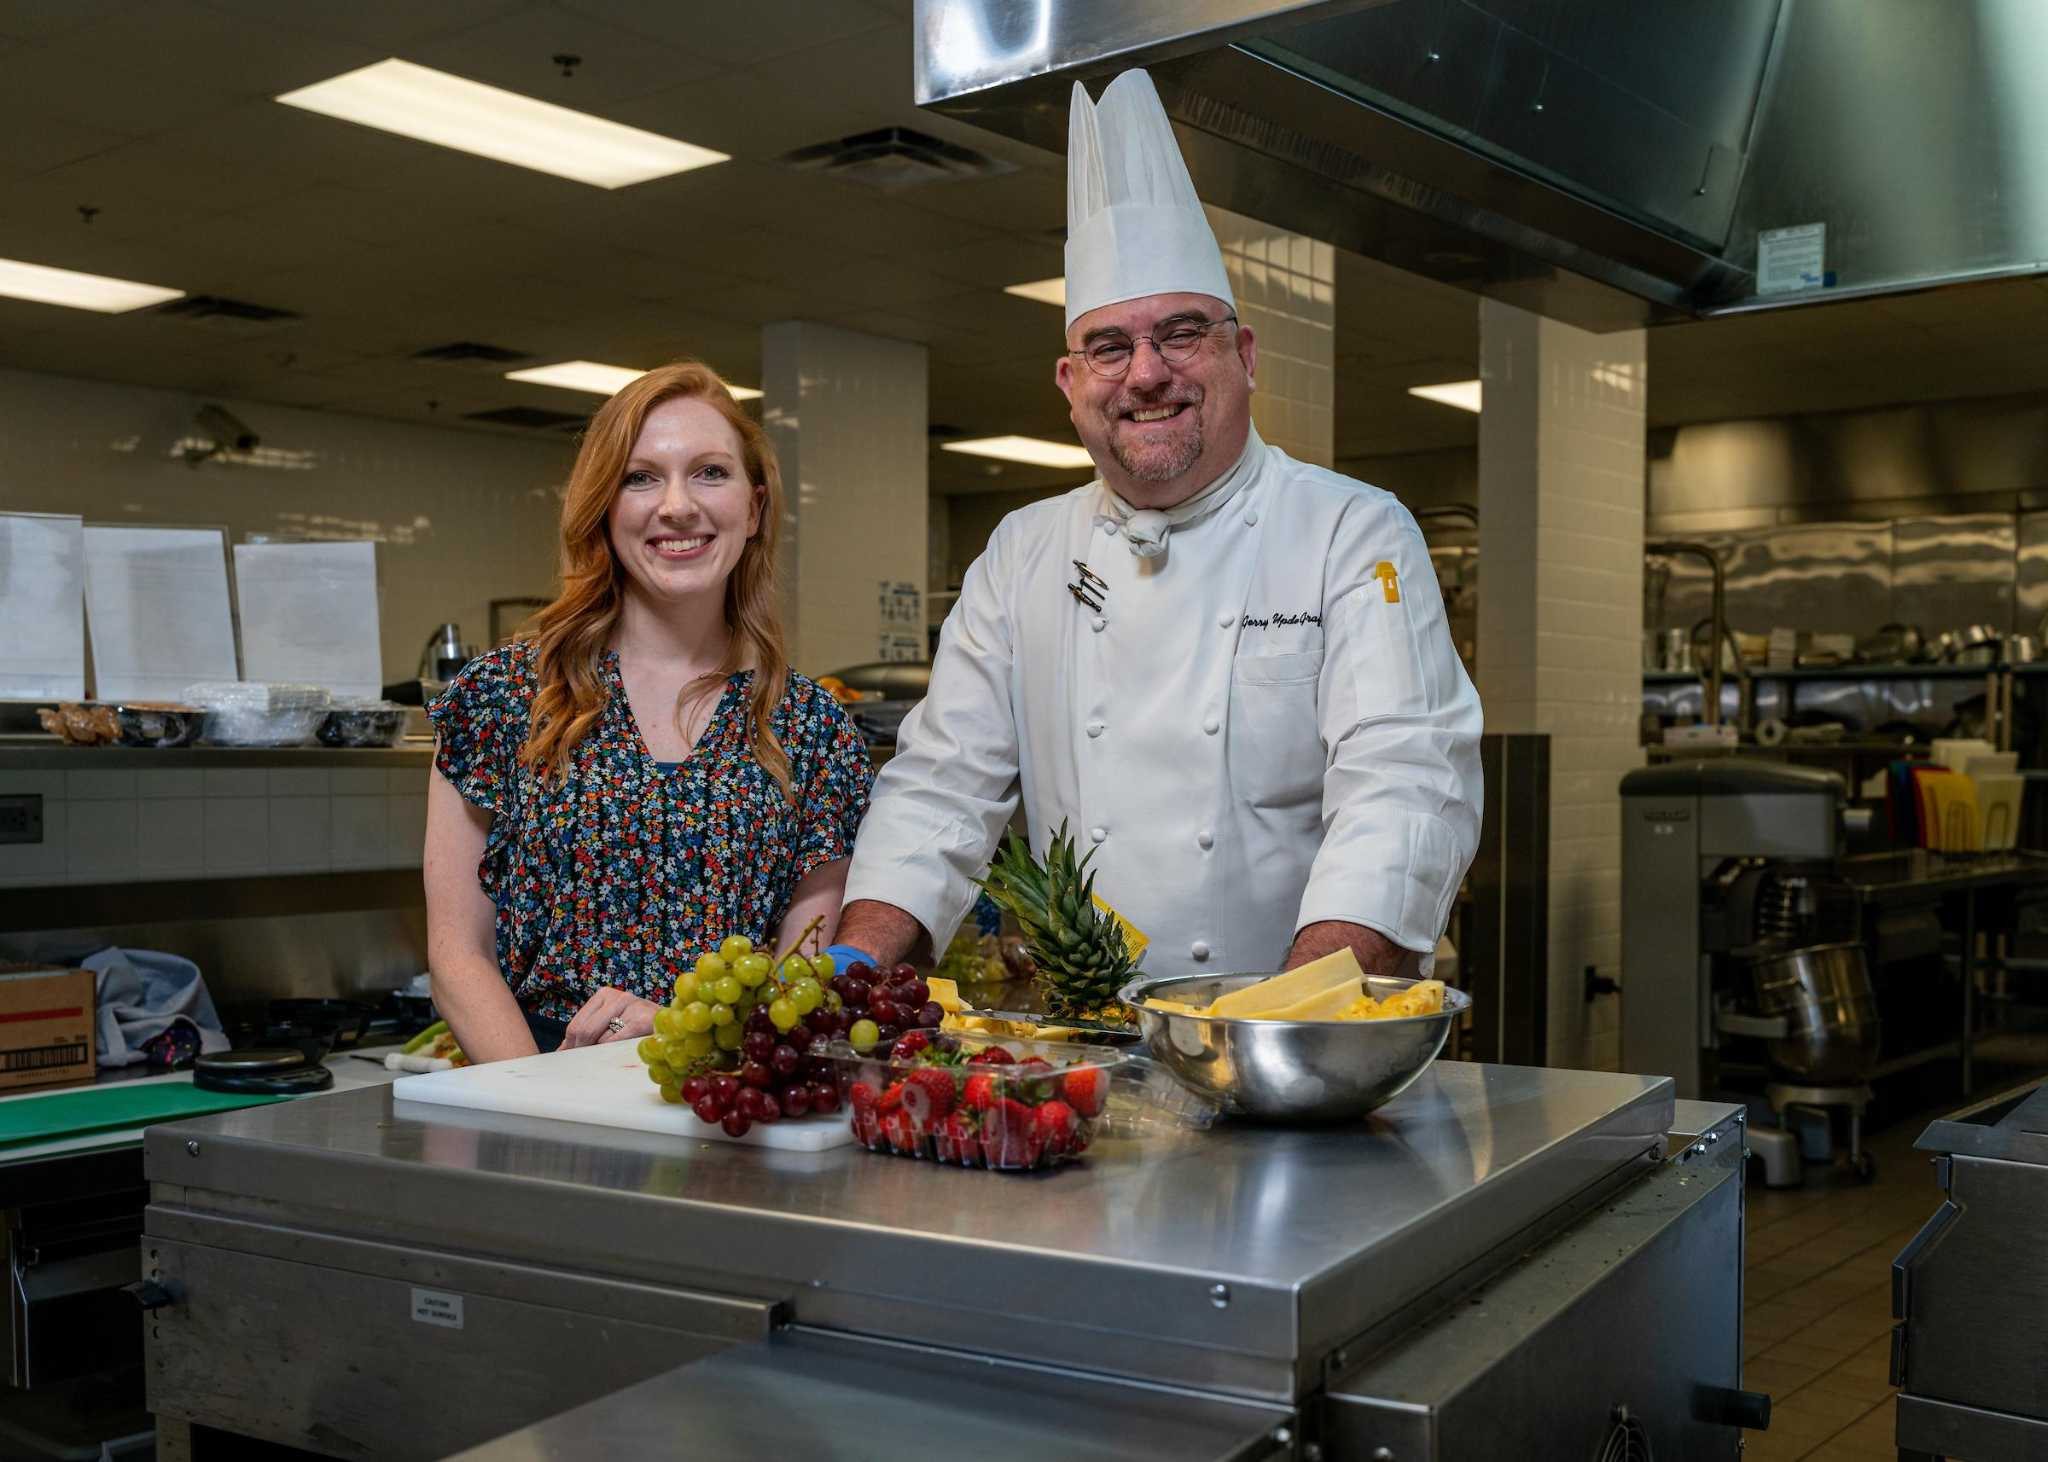 Chef adds a dash of diversity to cafeteria cuisine in Spring ISD